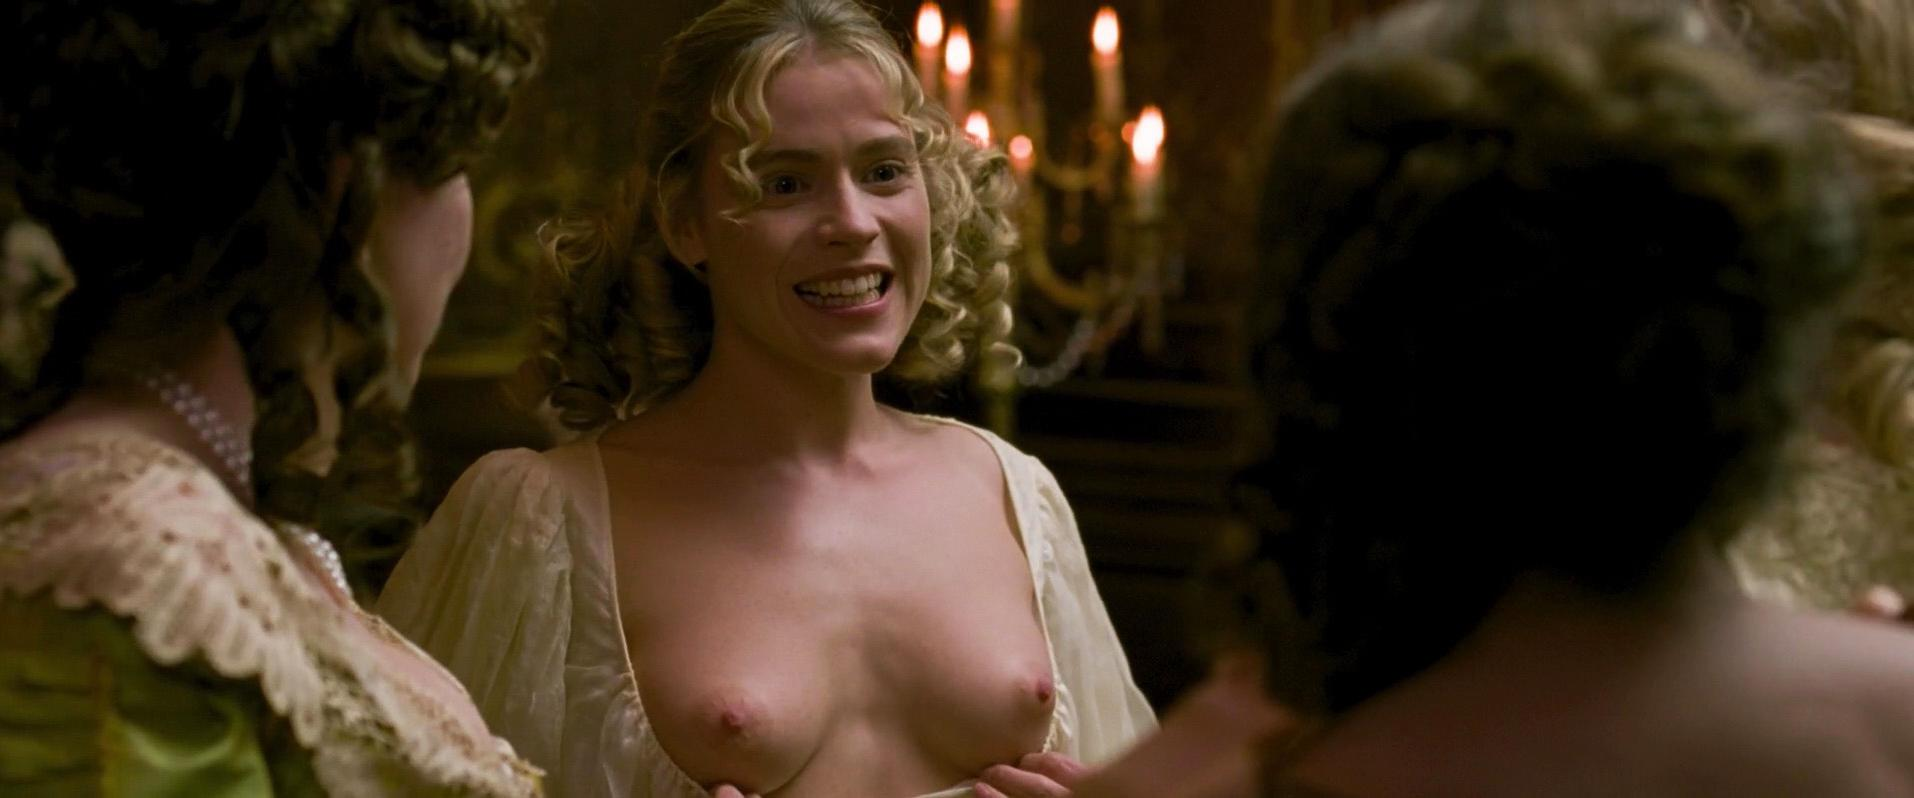 nude-photos-kate-winslet-naked-boobs-griffin-fucks-his